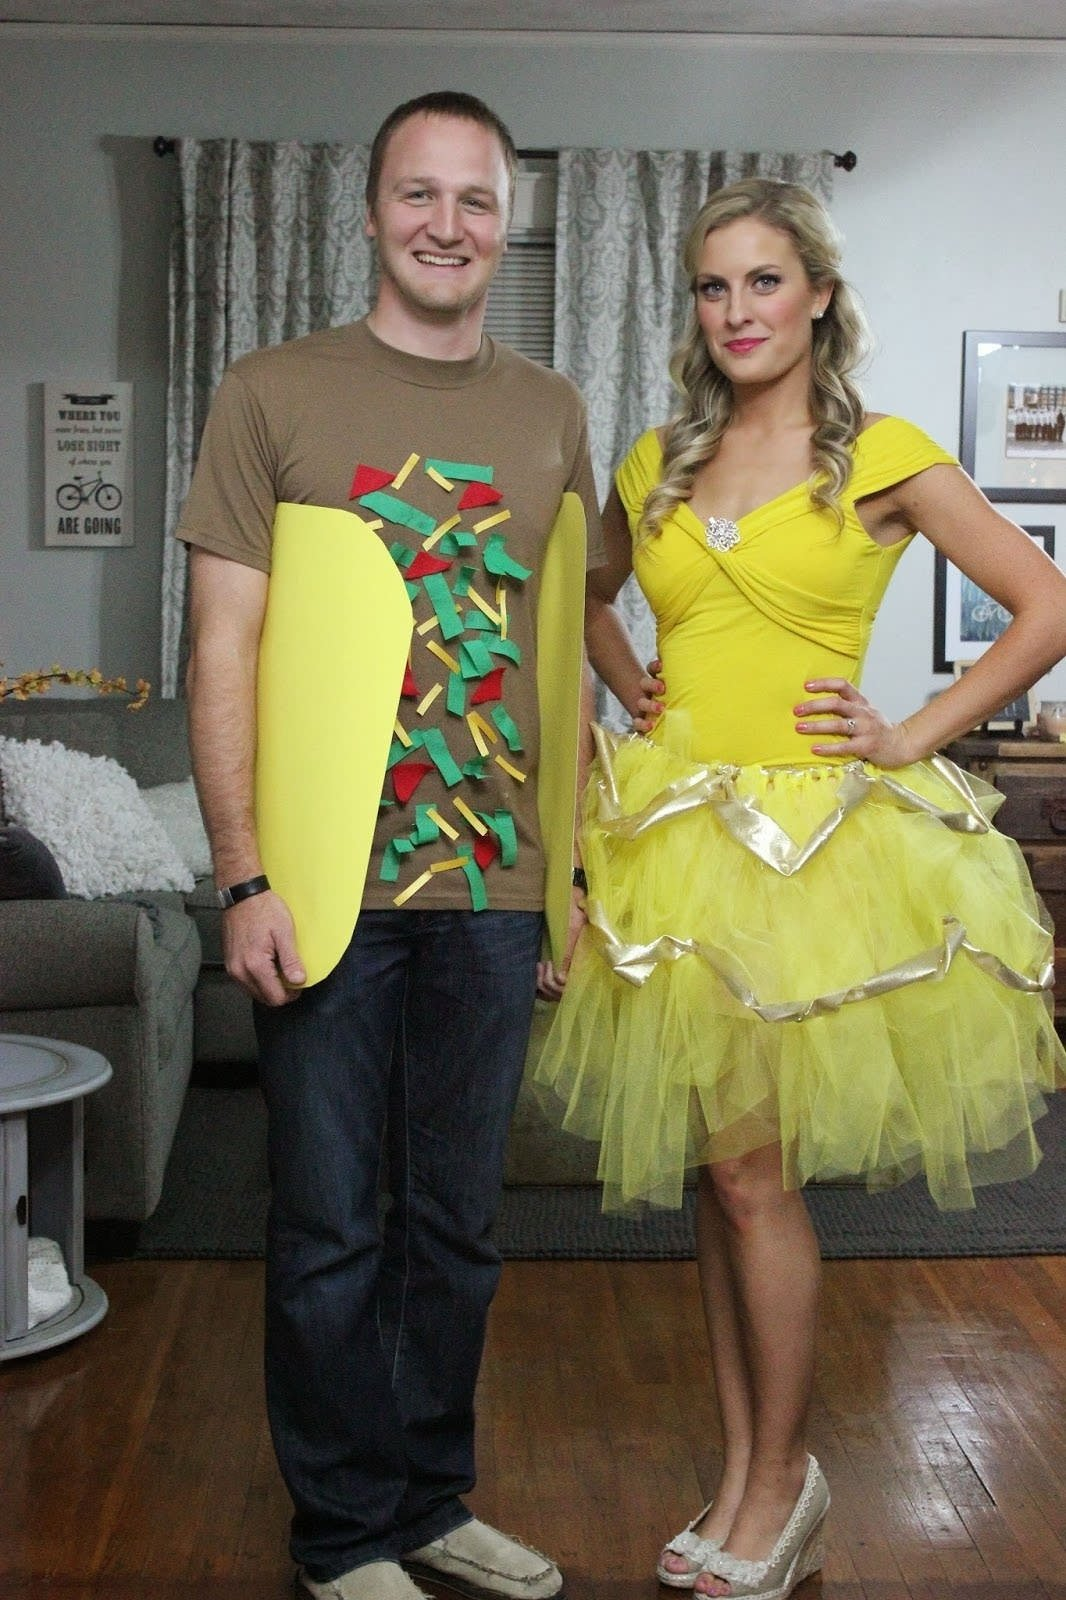 10 Lovely Creative Costume Ideas For Couples 57 couples diy costumes best 25 halloween couples ideas on 17 2020